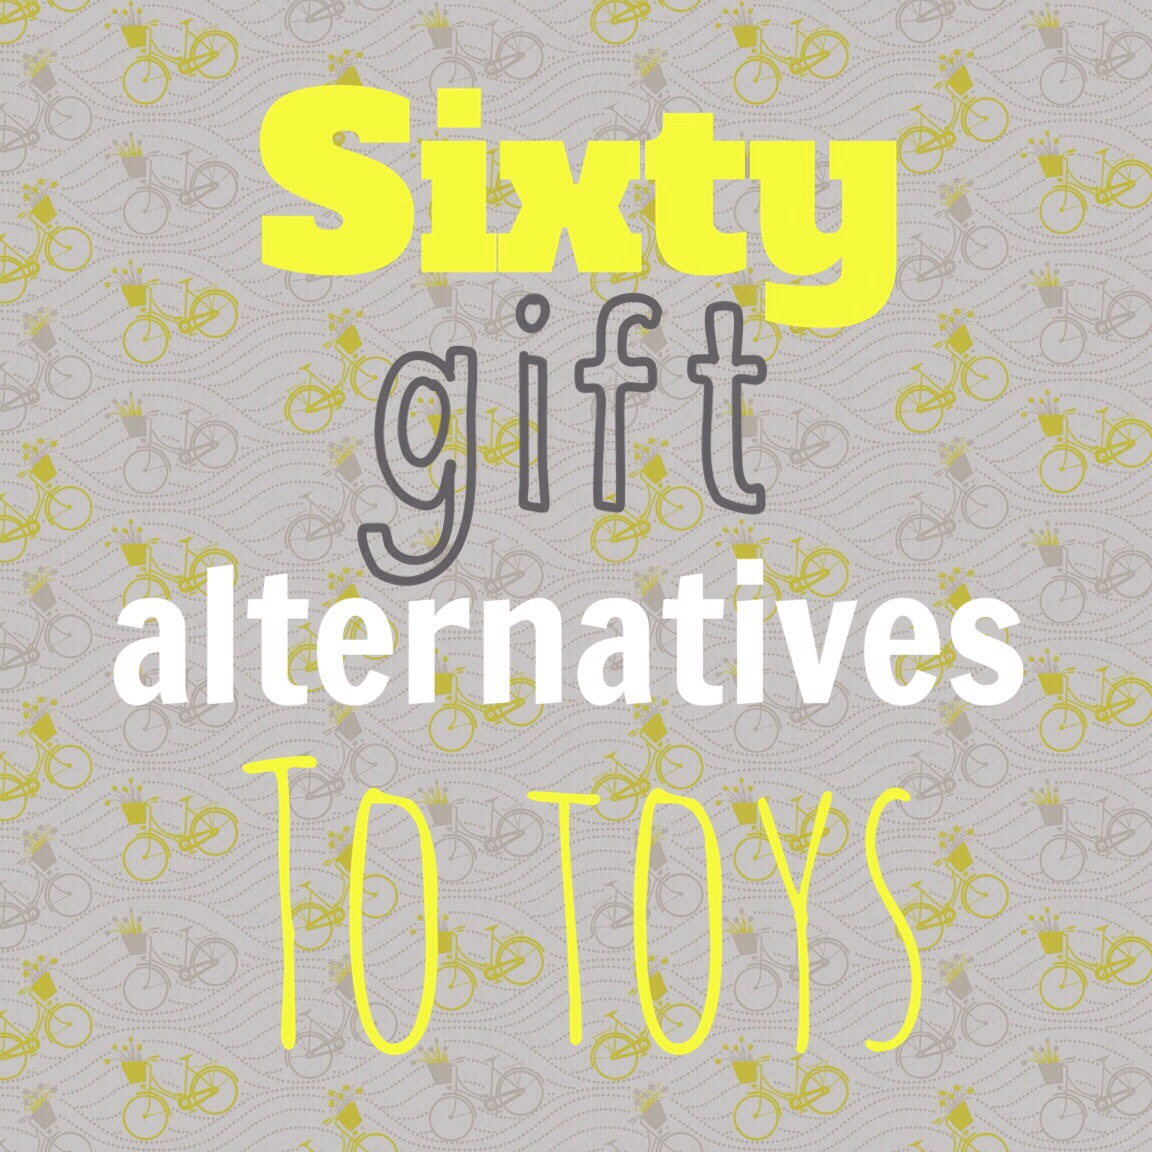 Sixty Great Gift ideas for Kids - that aren't toys!